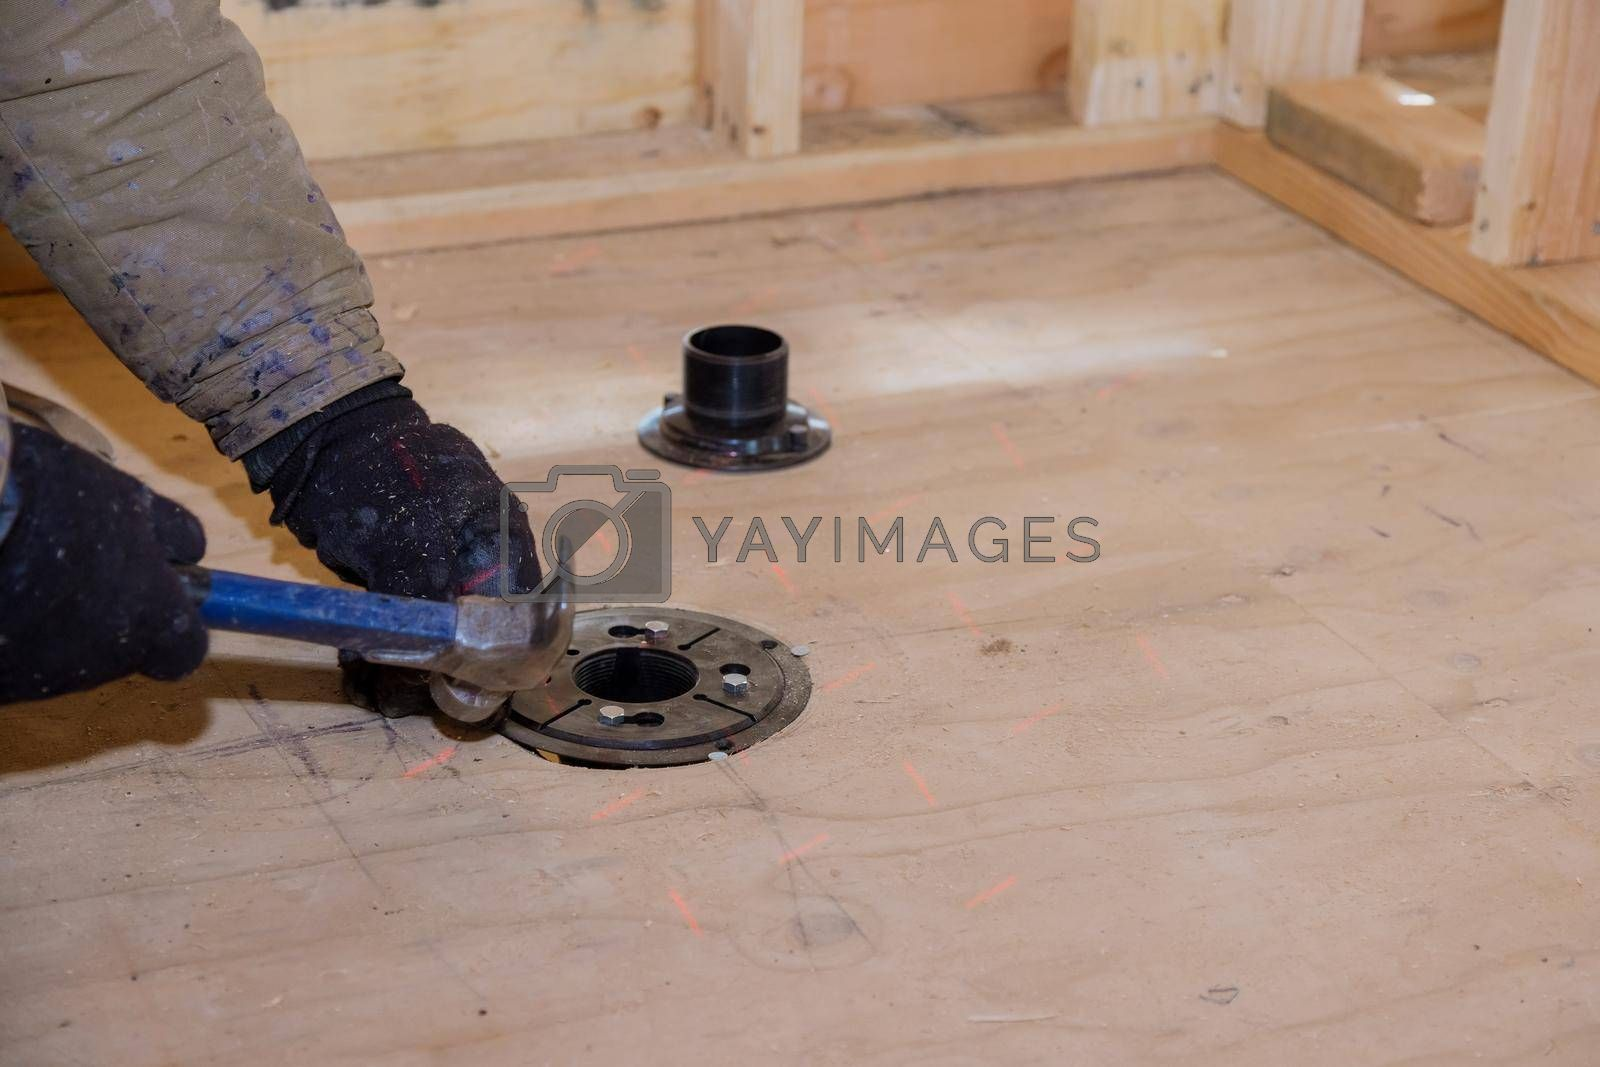 Nailing shower drain to plywood flooring for new plumbing install of supply sewage